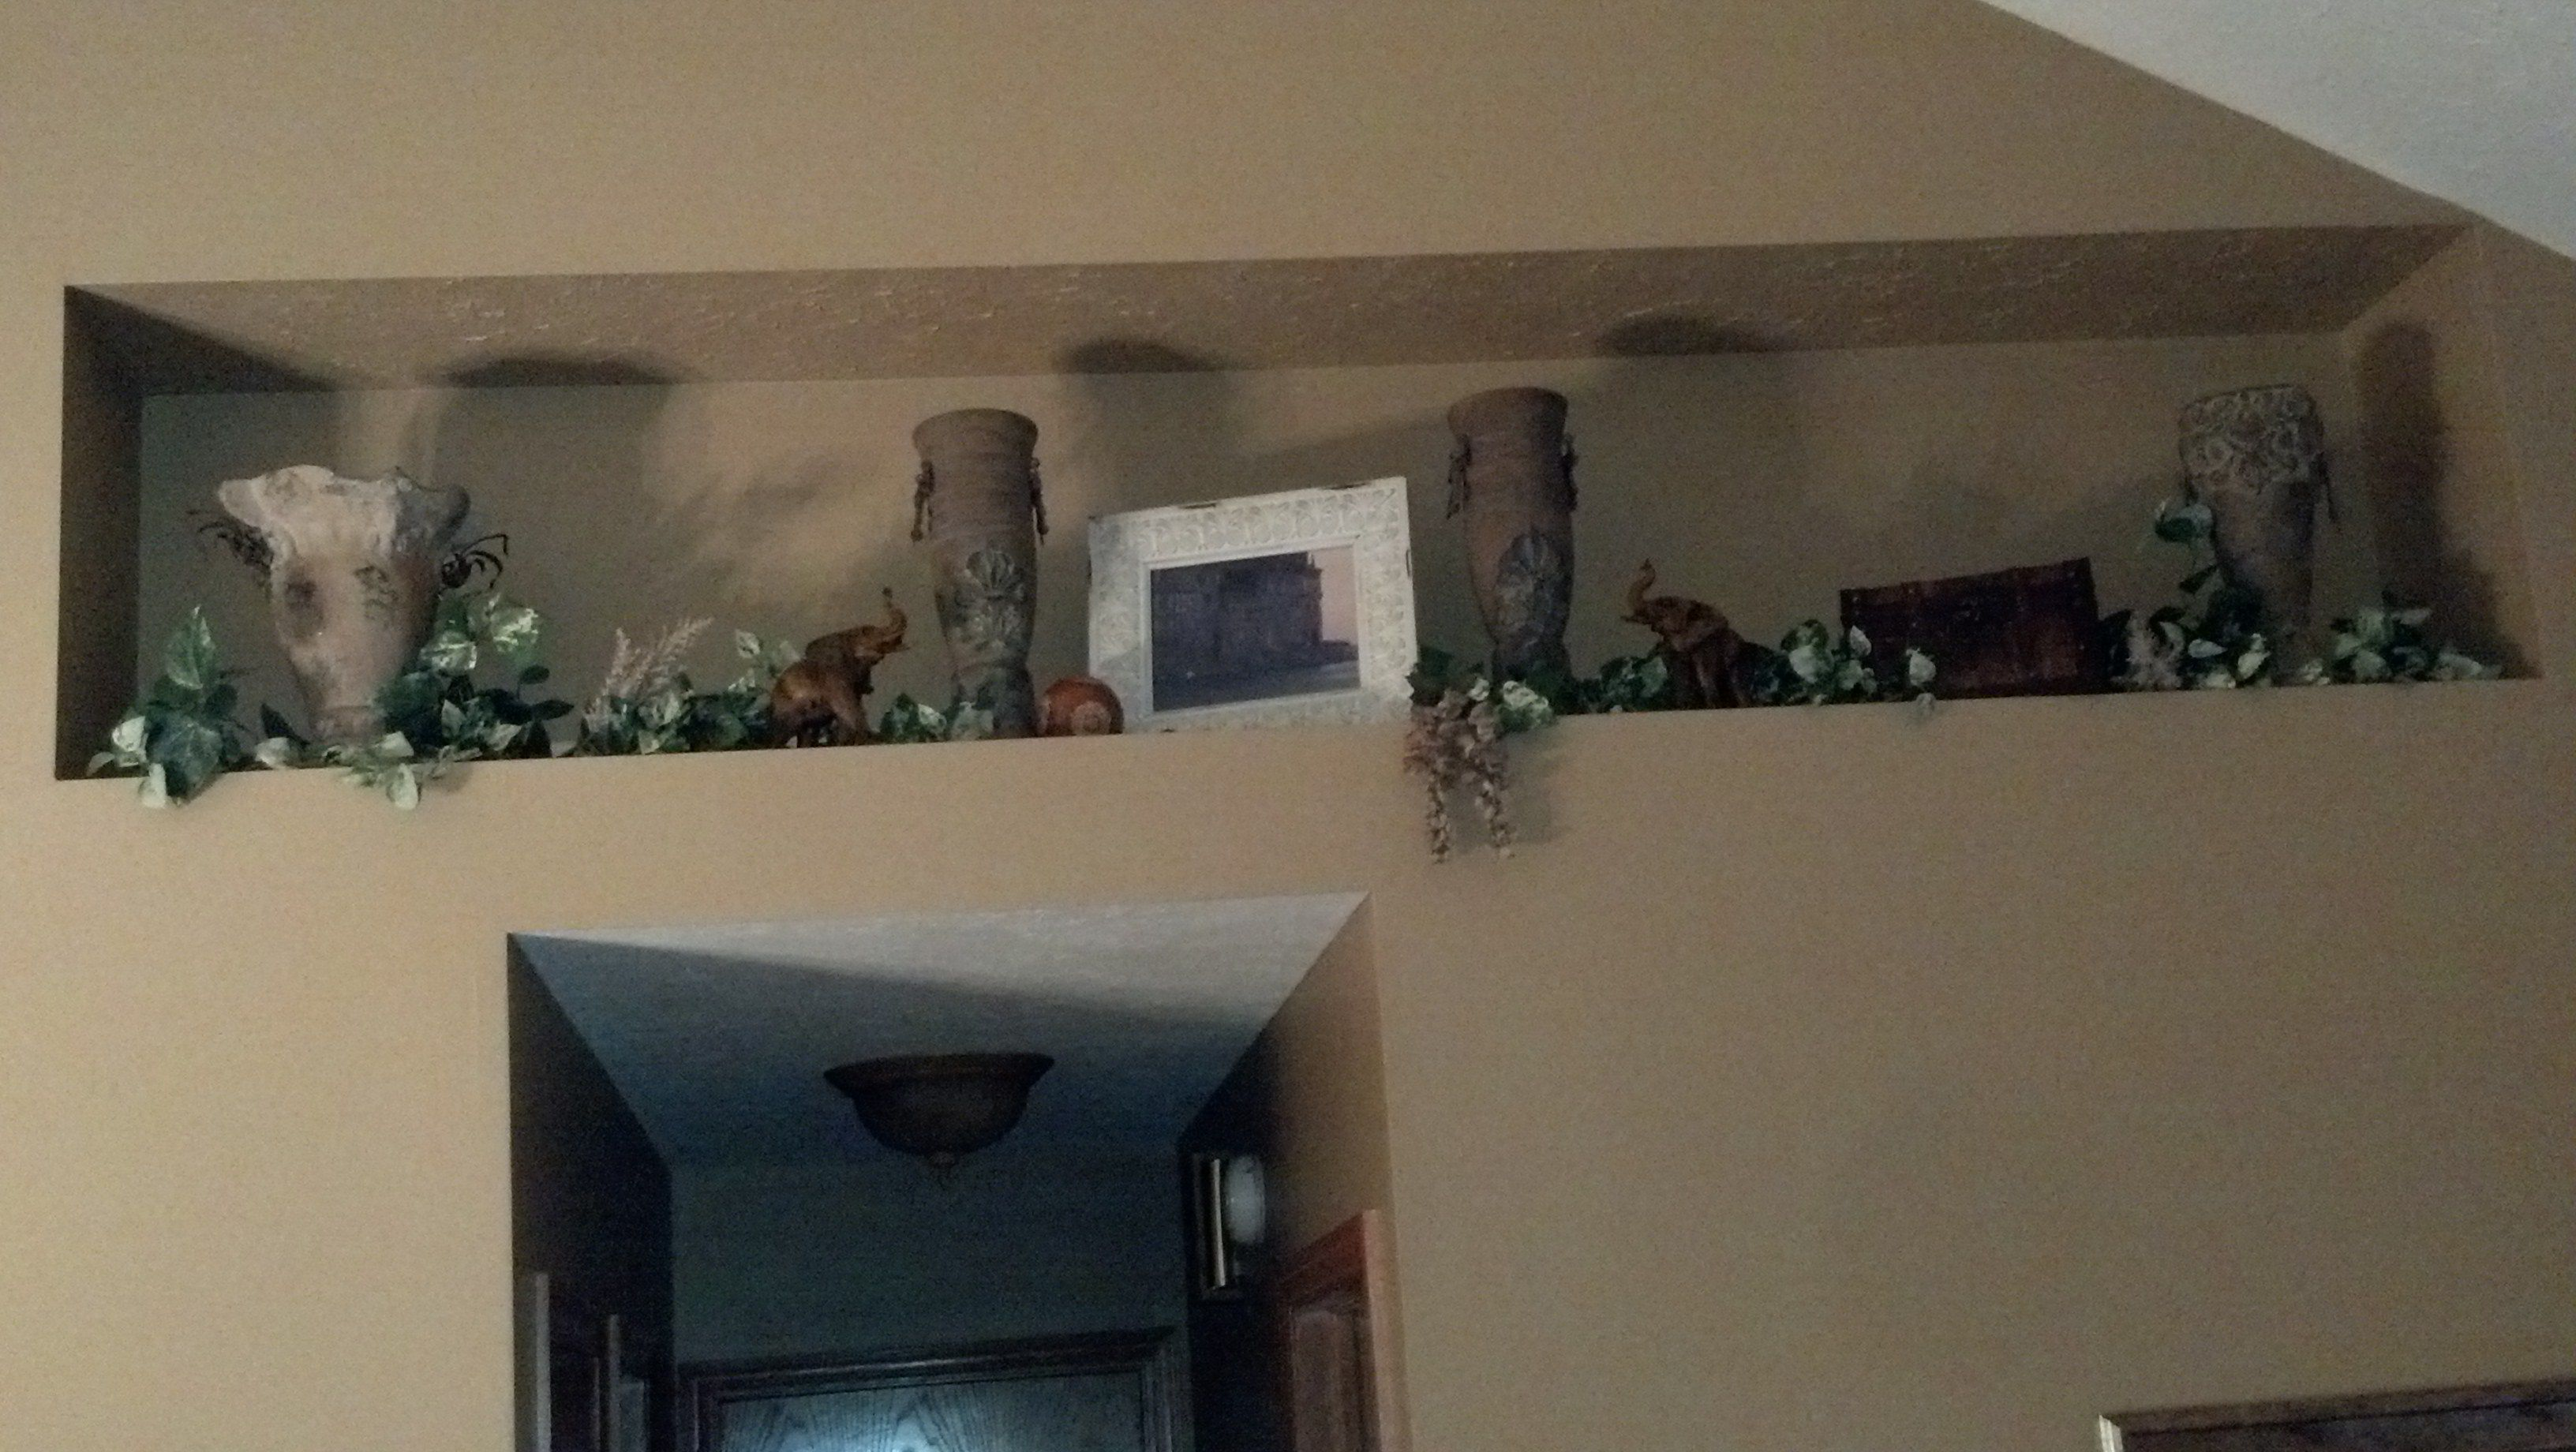 Plant Ledge Decorating Decorating Pinterest